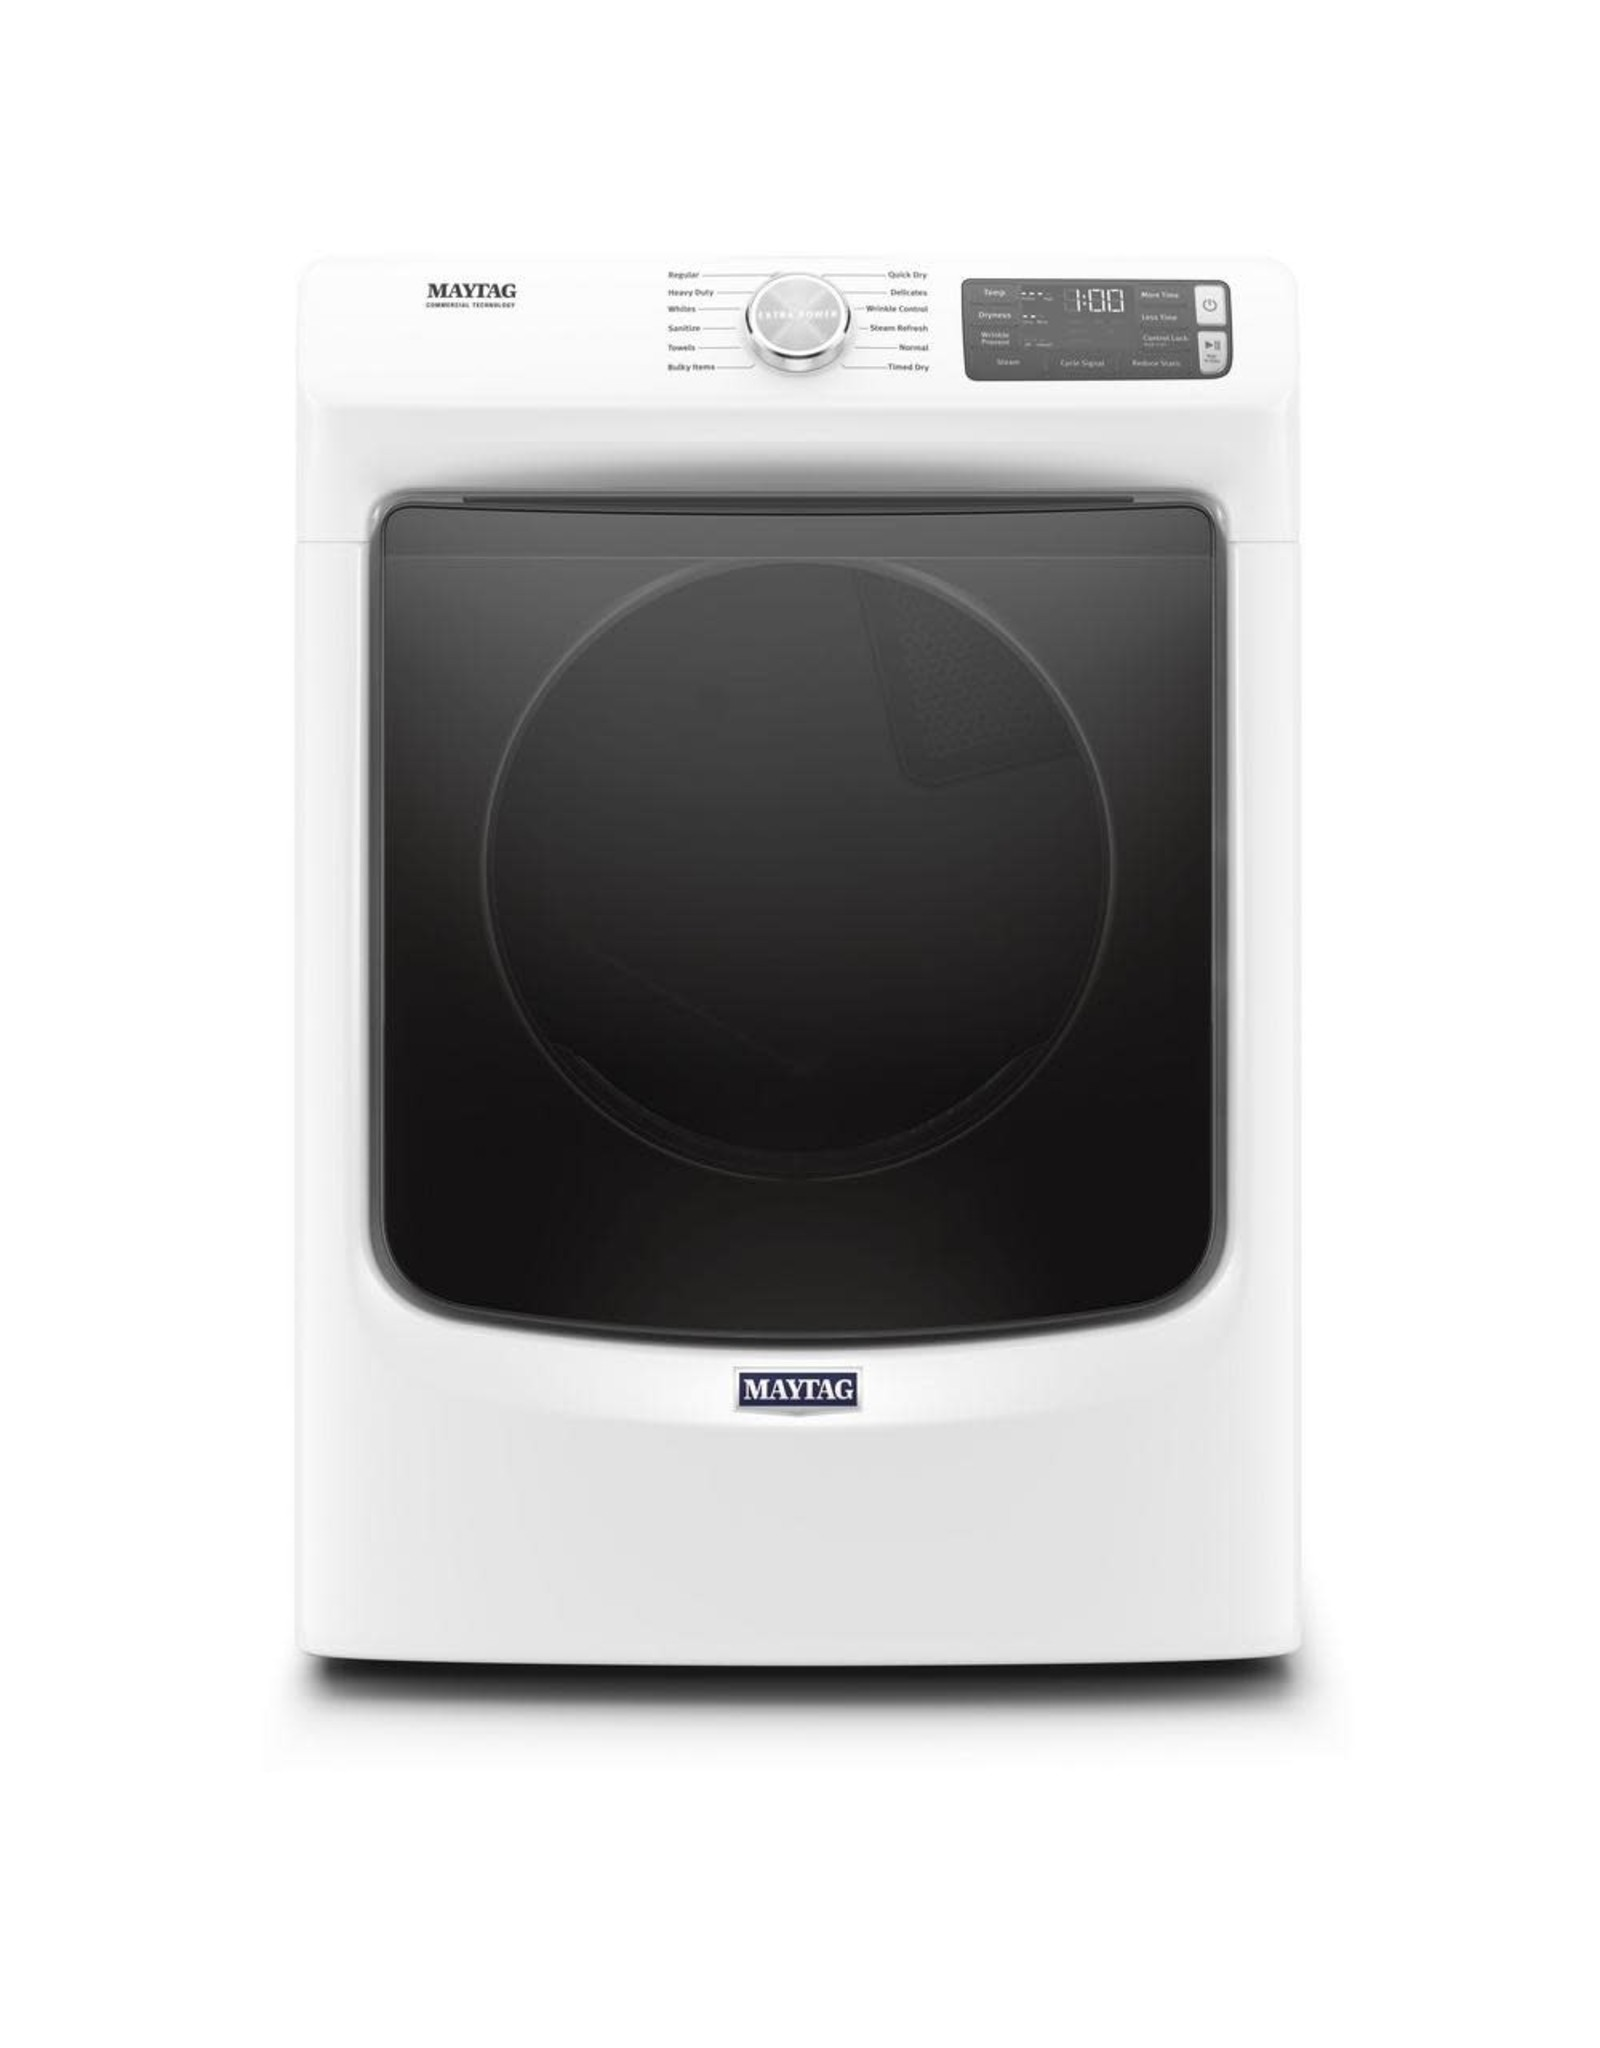 MAYTAG MED6630HW 7.3 cu. ft. 240-Volt White Stackable Electric Vented Dryer with Steam, ENERGY STAR